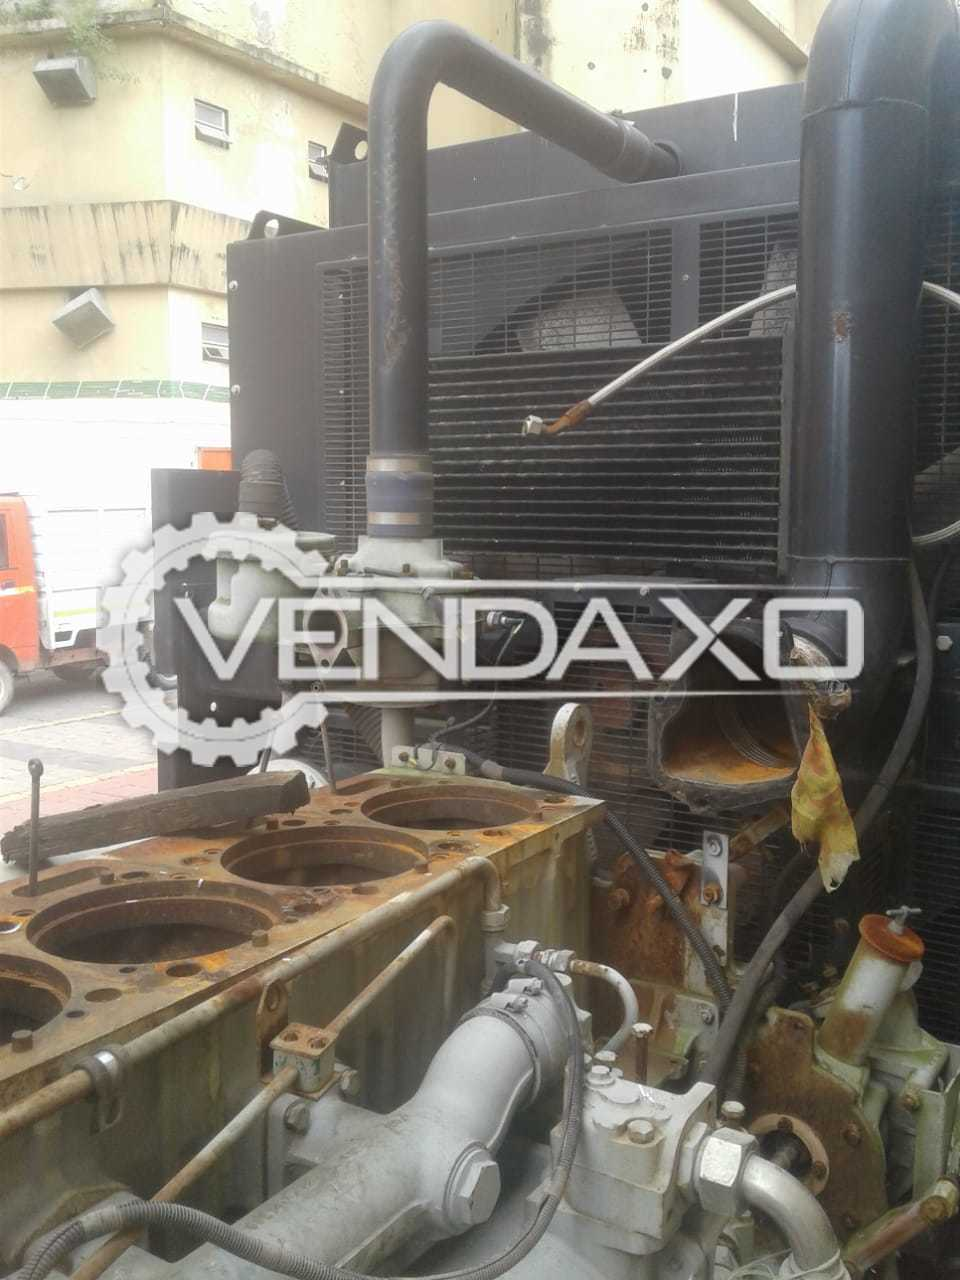 For Sale Used Perkins Diesel Generator - 1010 Kva, 2016 Model